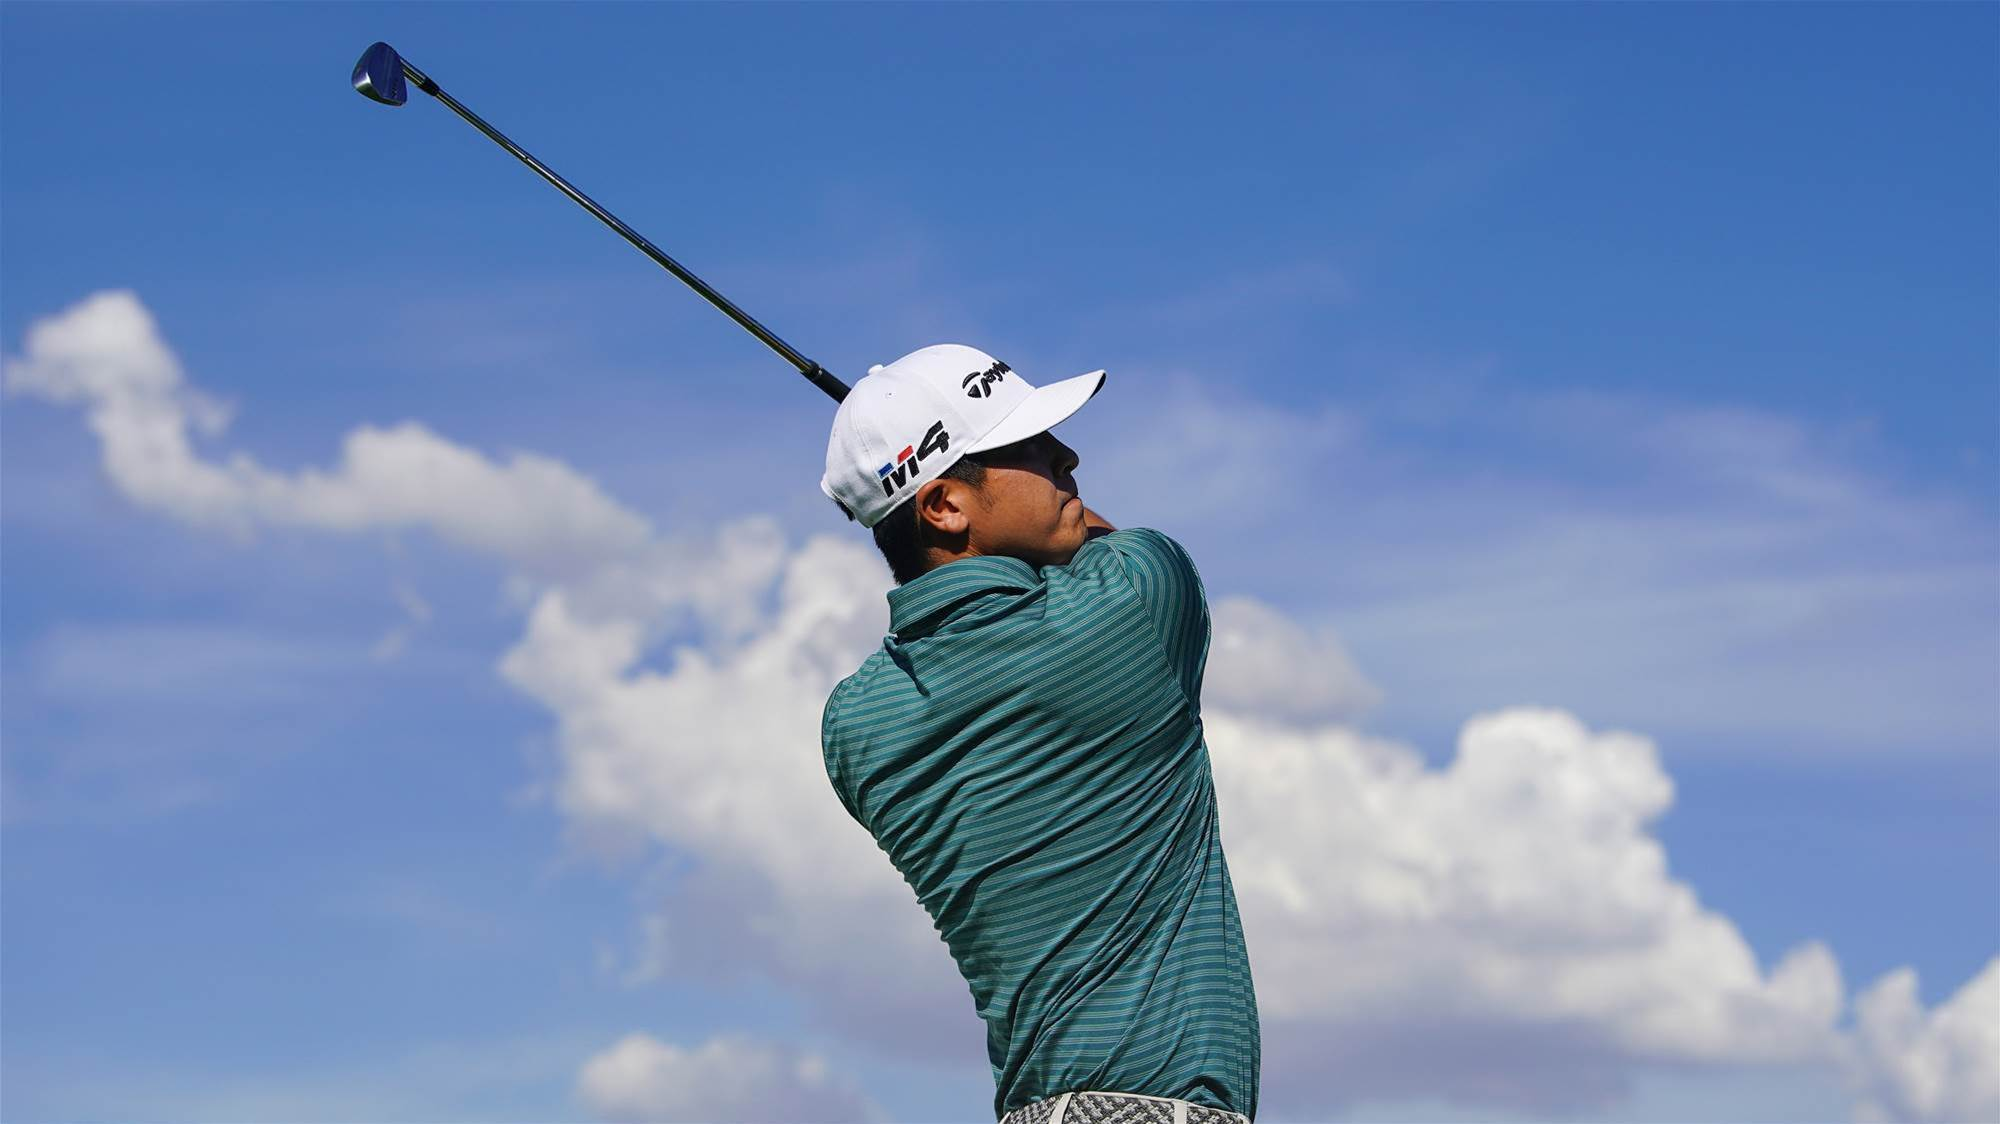 Kitayama chases Oosthuizen in South Africa